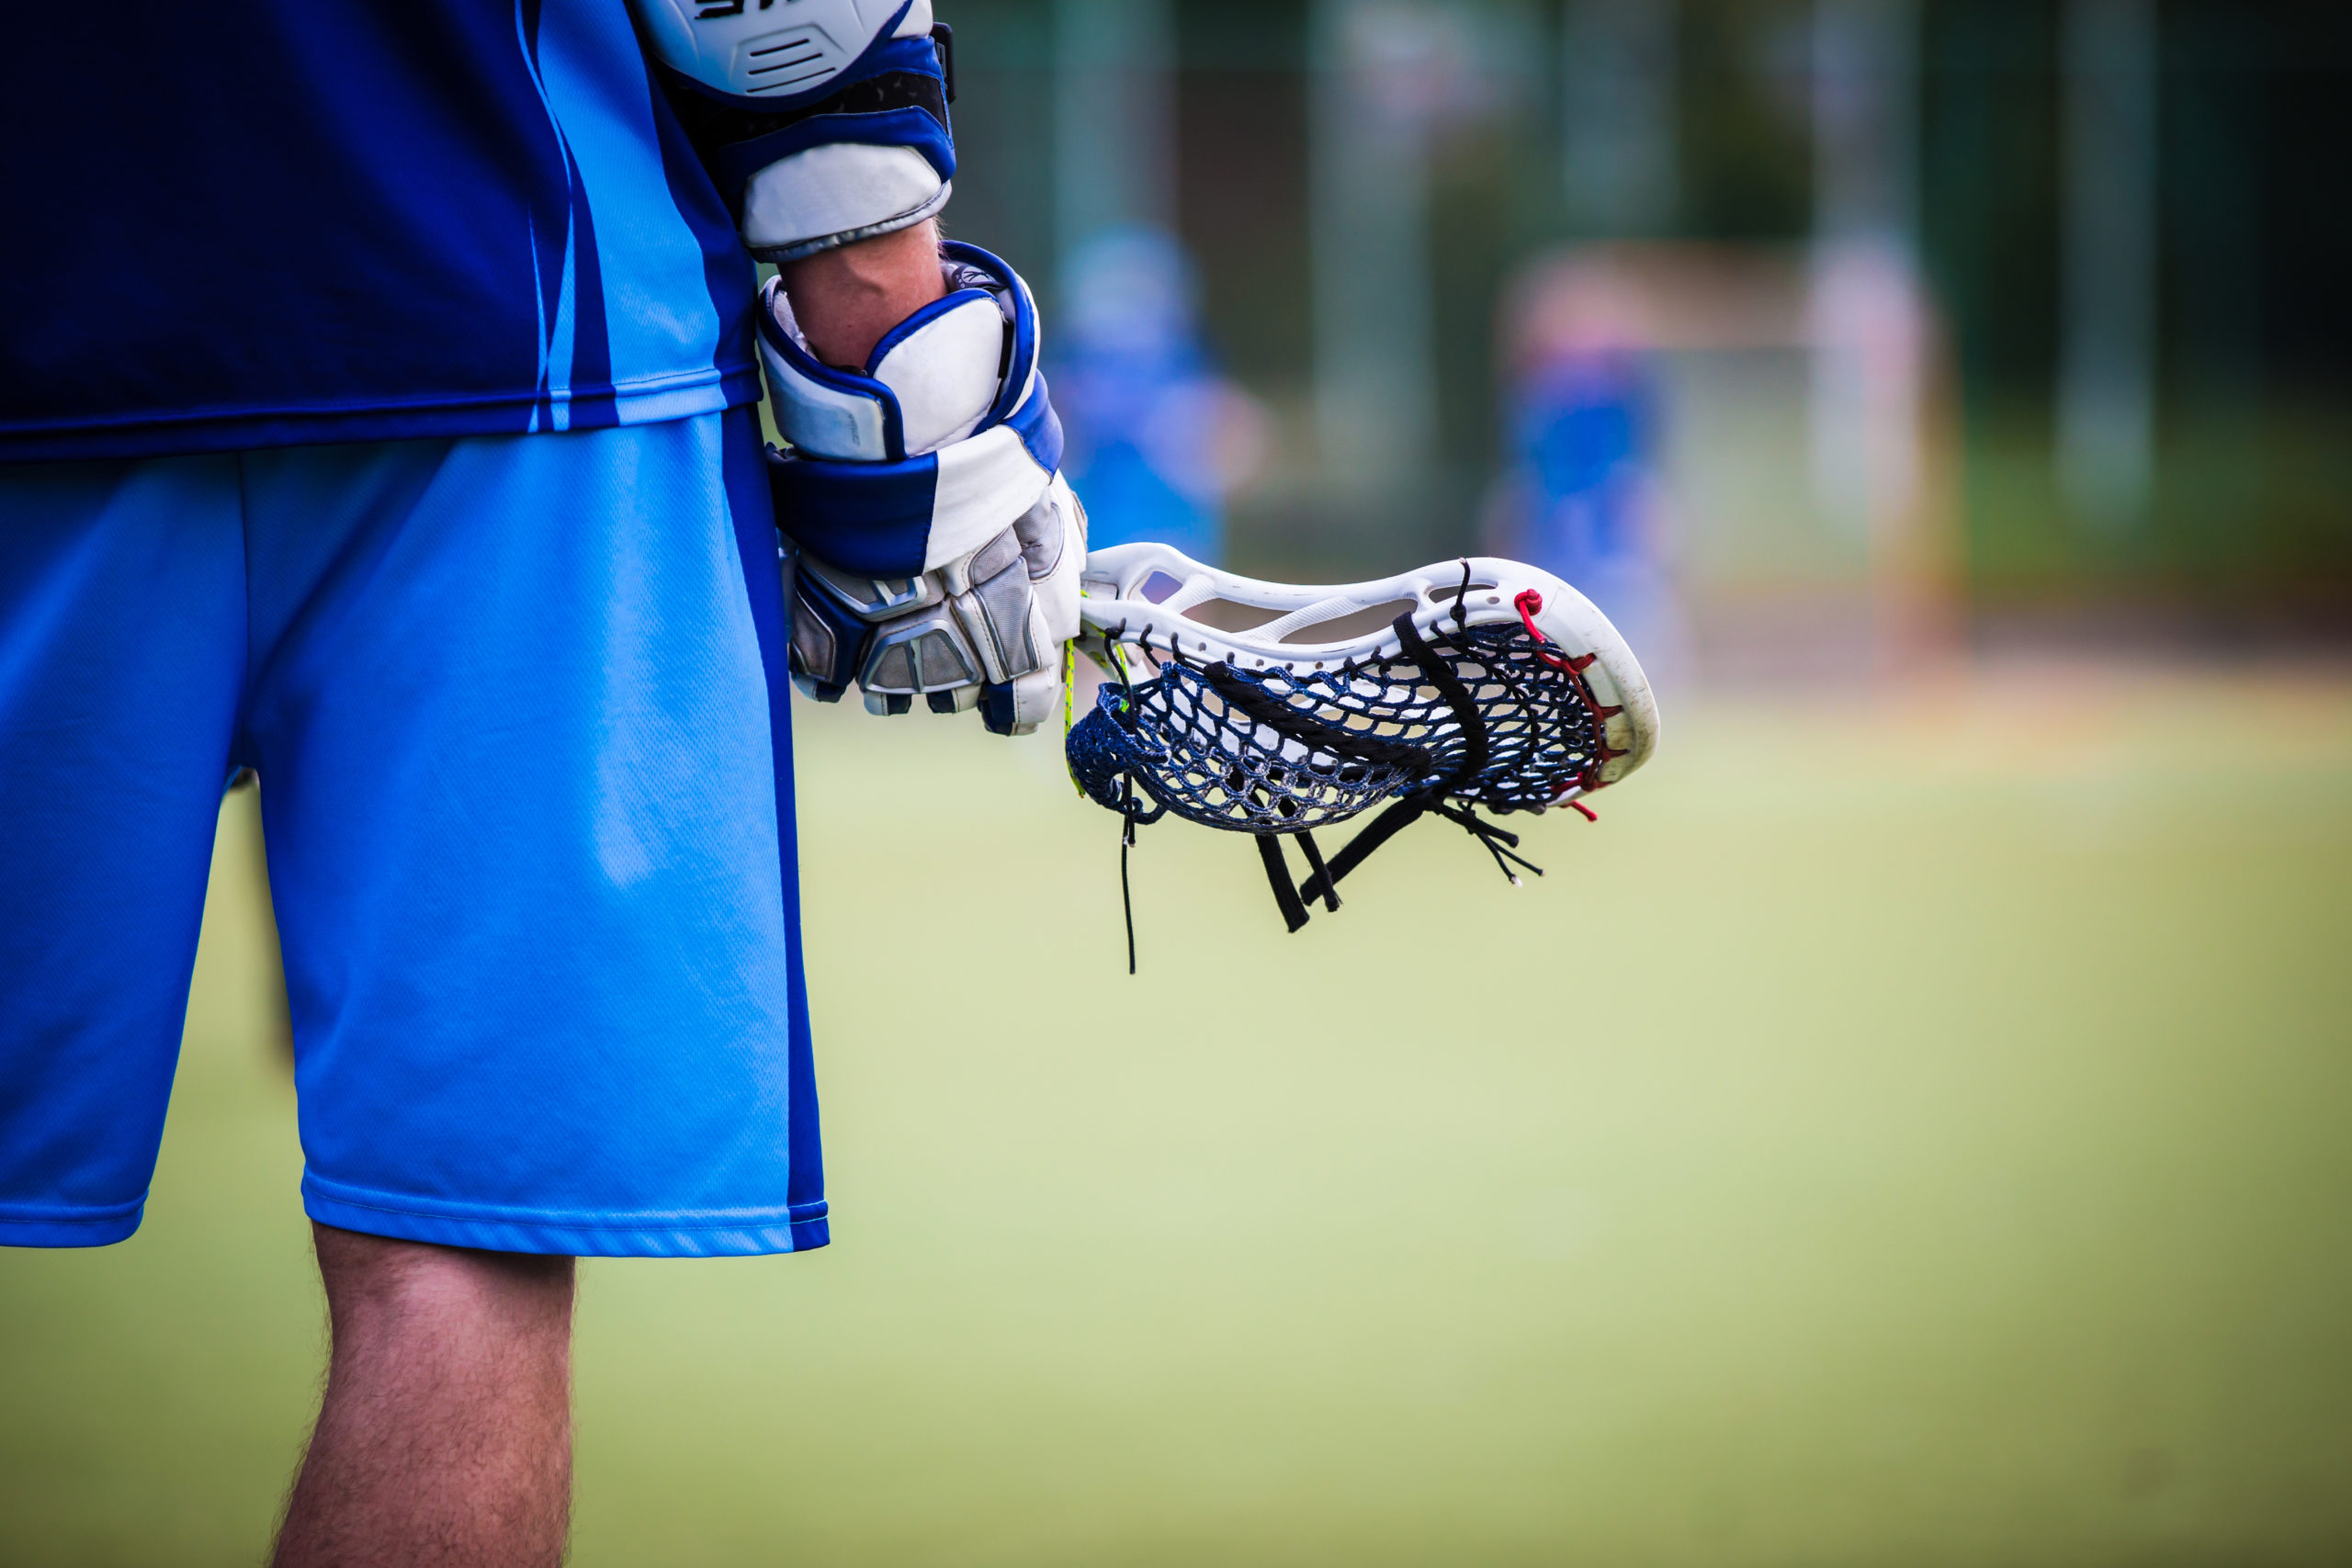 A waist down back shot of a male lacrosse player in blue shorts wearing a glove and holding his lacrosse stick.